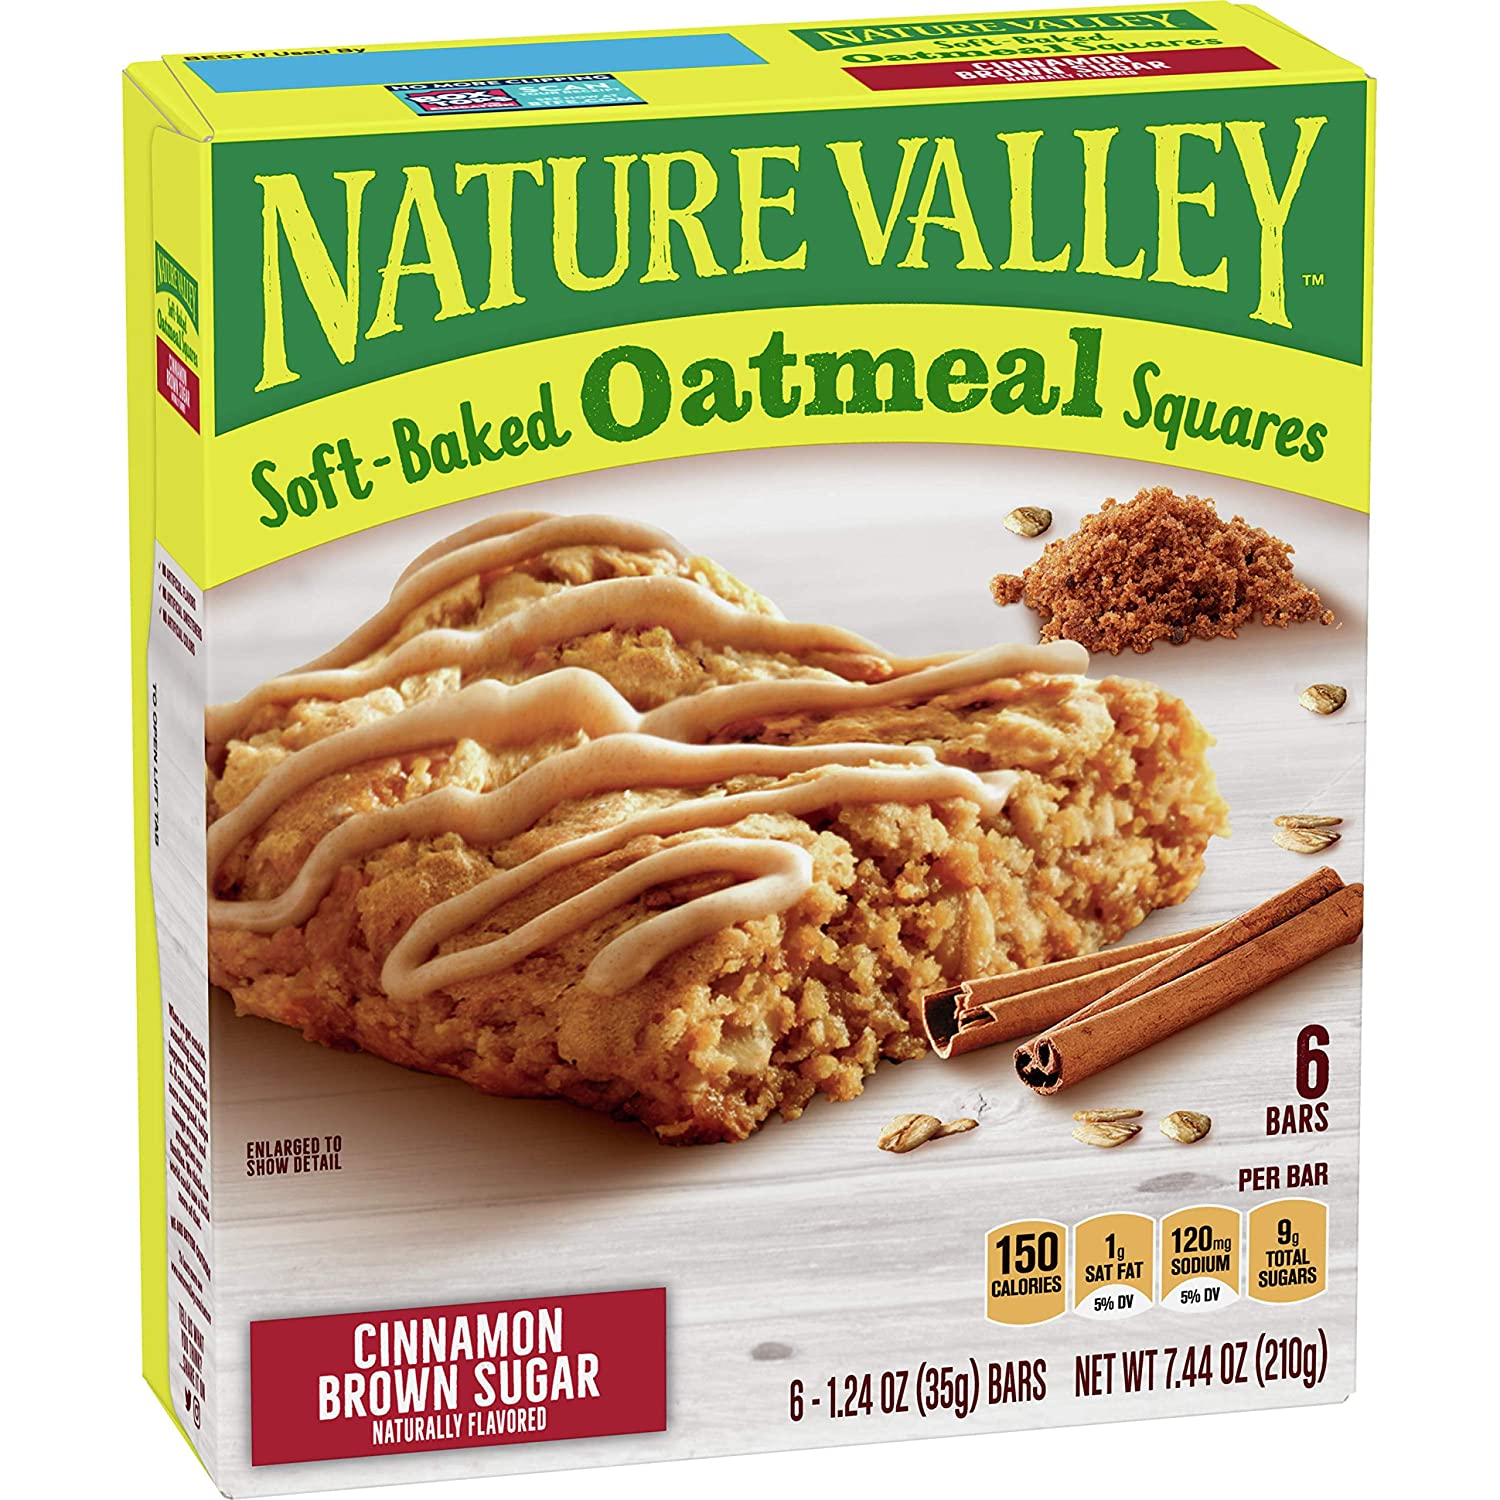 Nature Valley Soft-Baked Oatmeal Squares, Cinnamon Brown Sugar, 6 ct, 7.44 oz